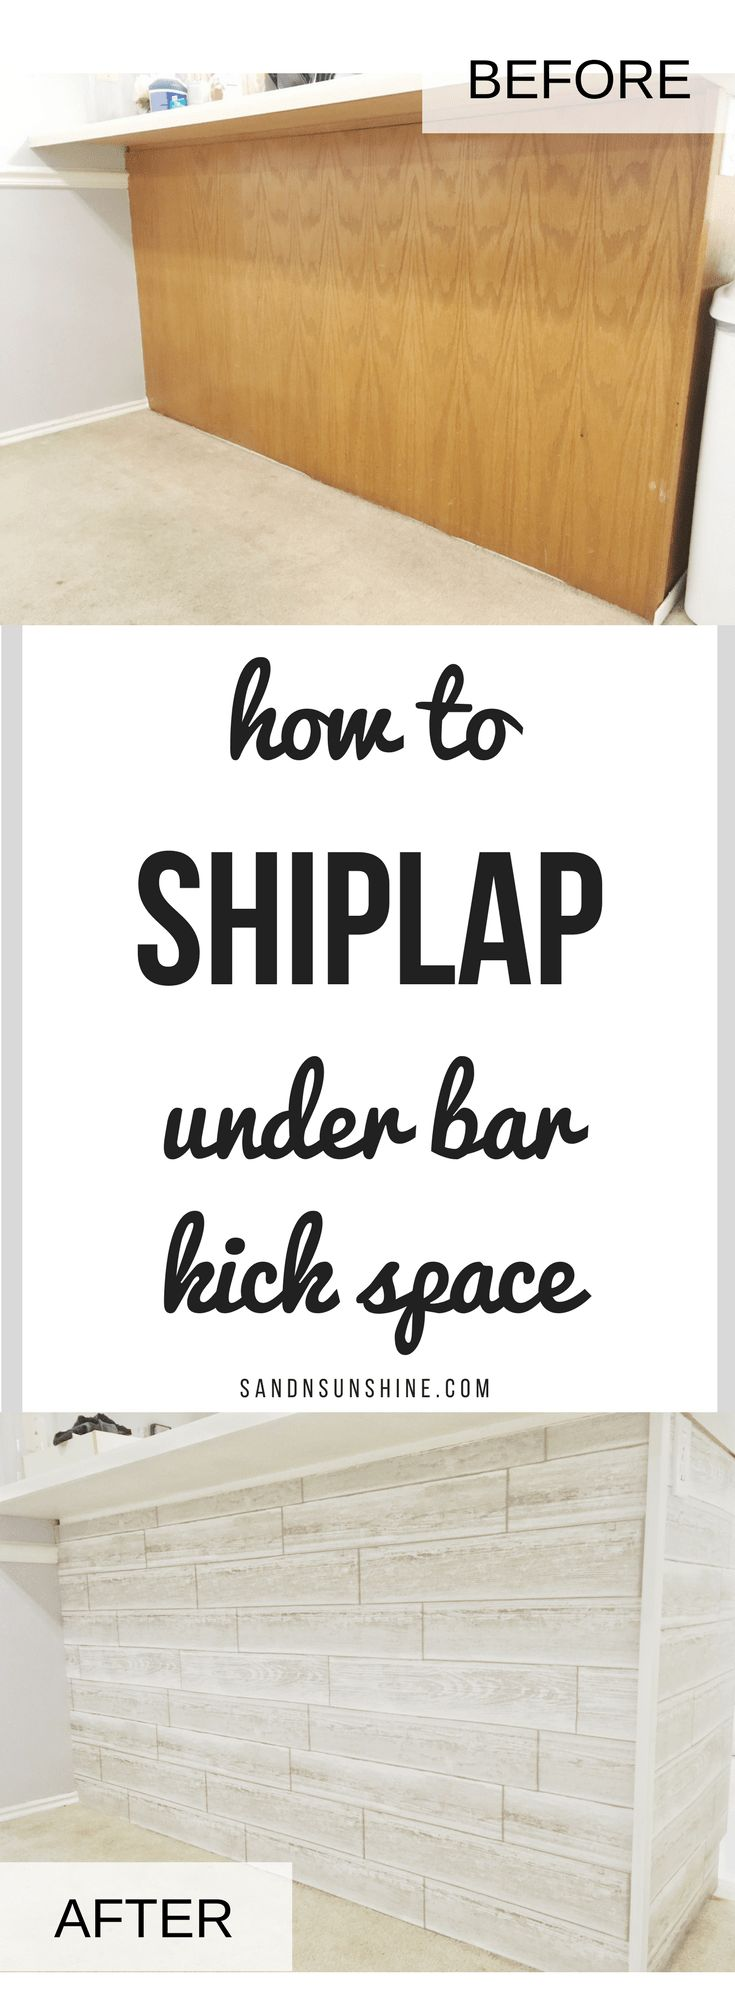 DIY: Shiplap Under Bar Kick Space (for under $25!)